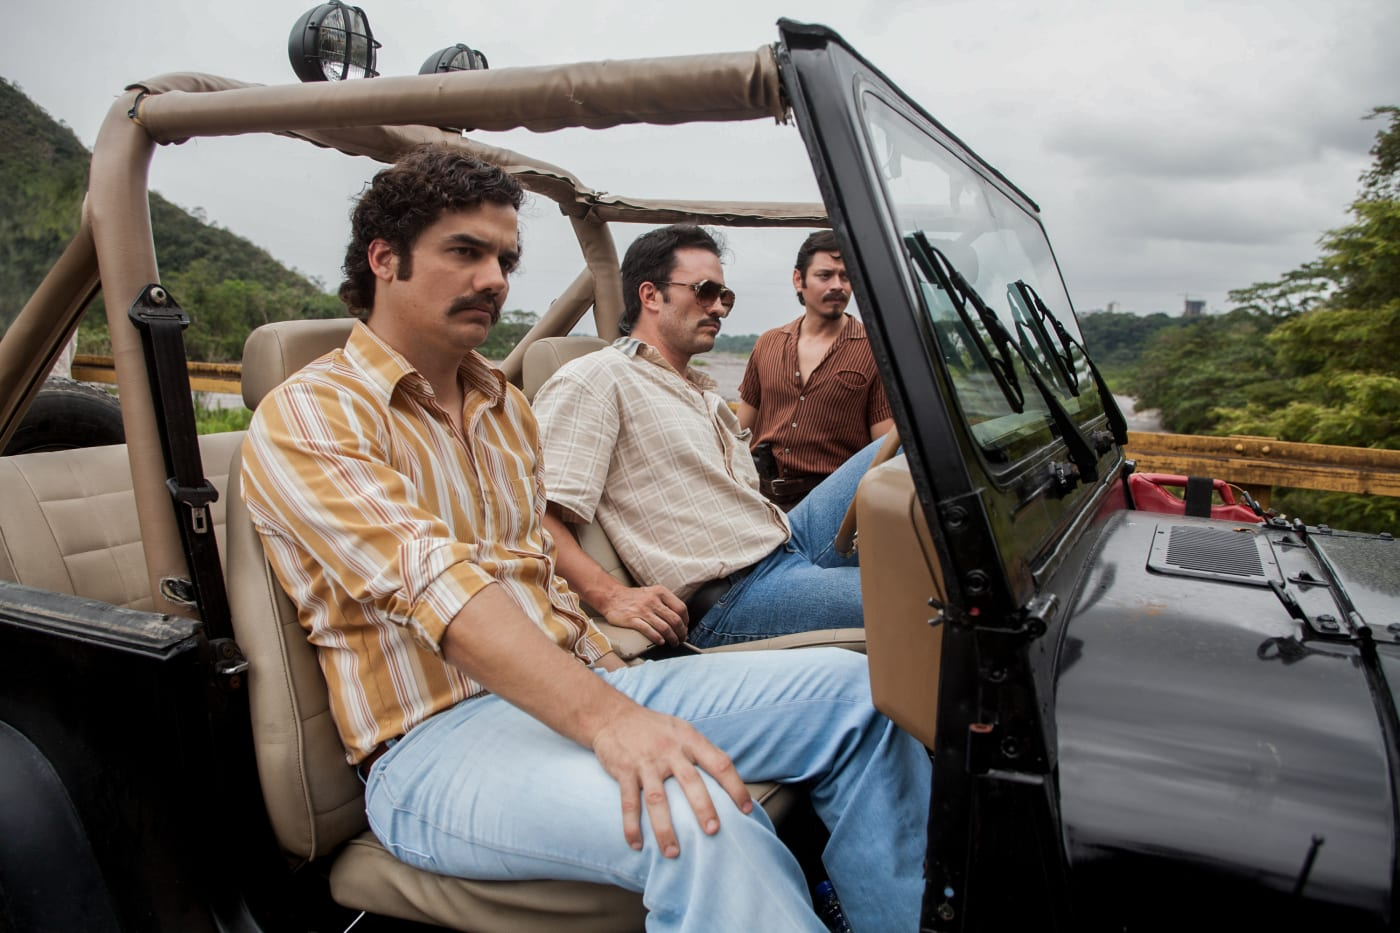 wagner moura narcos 1